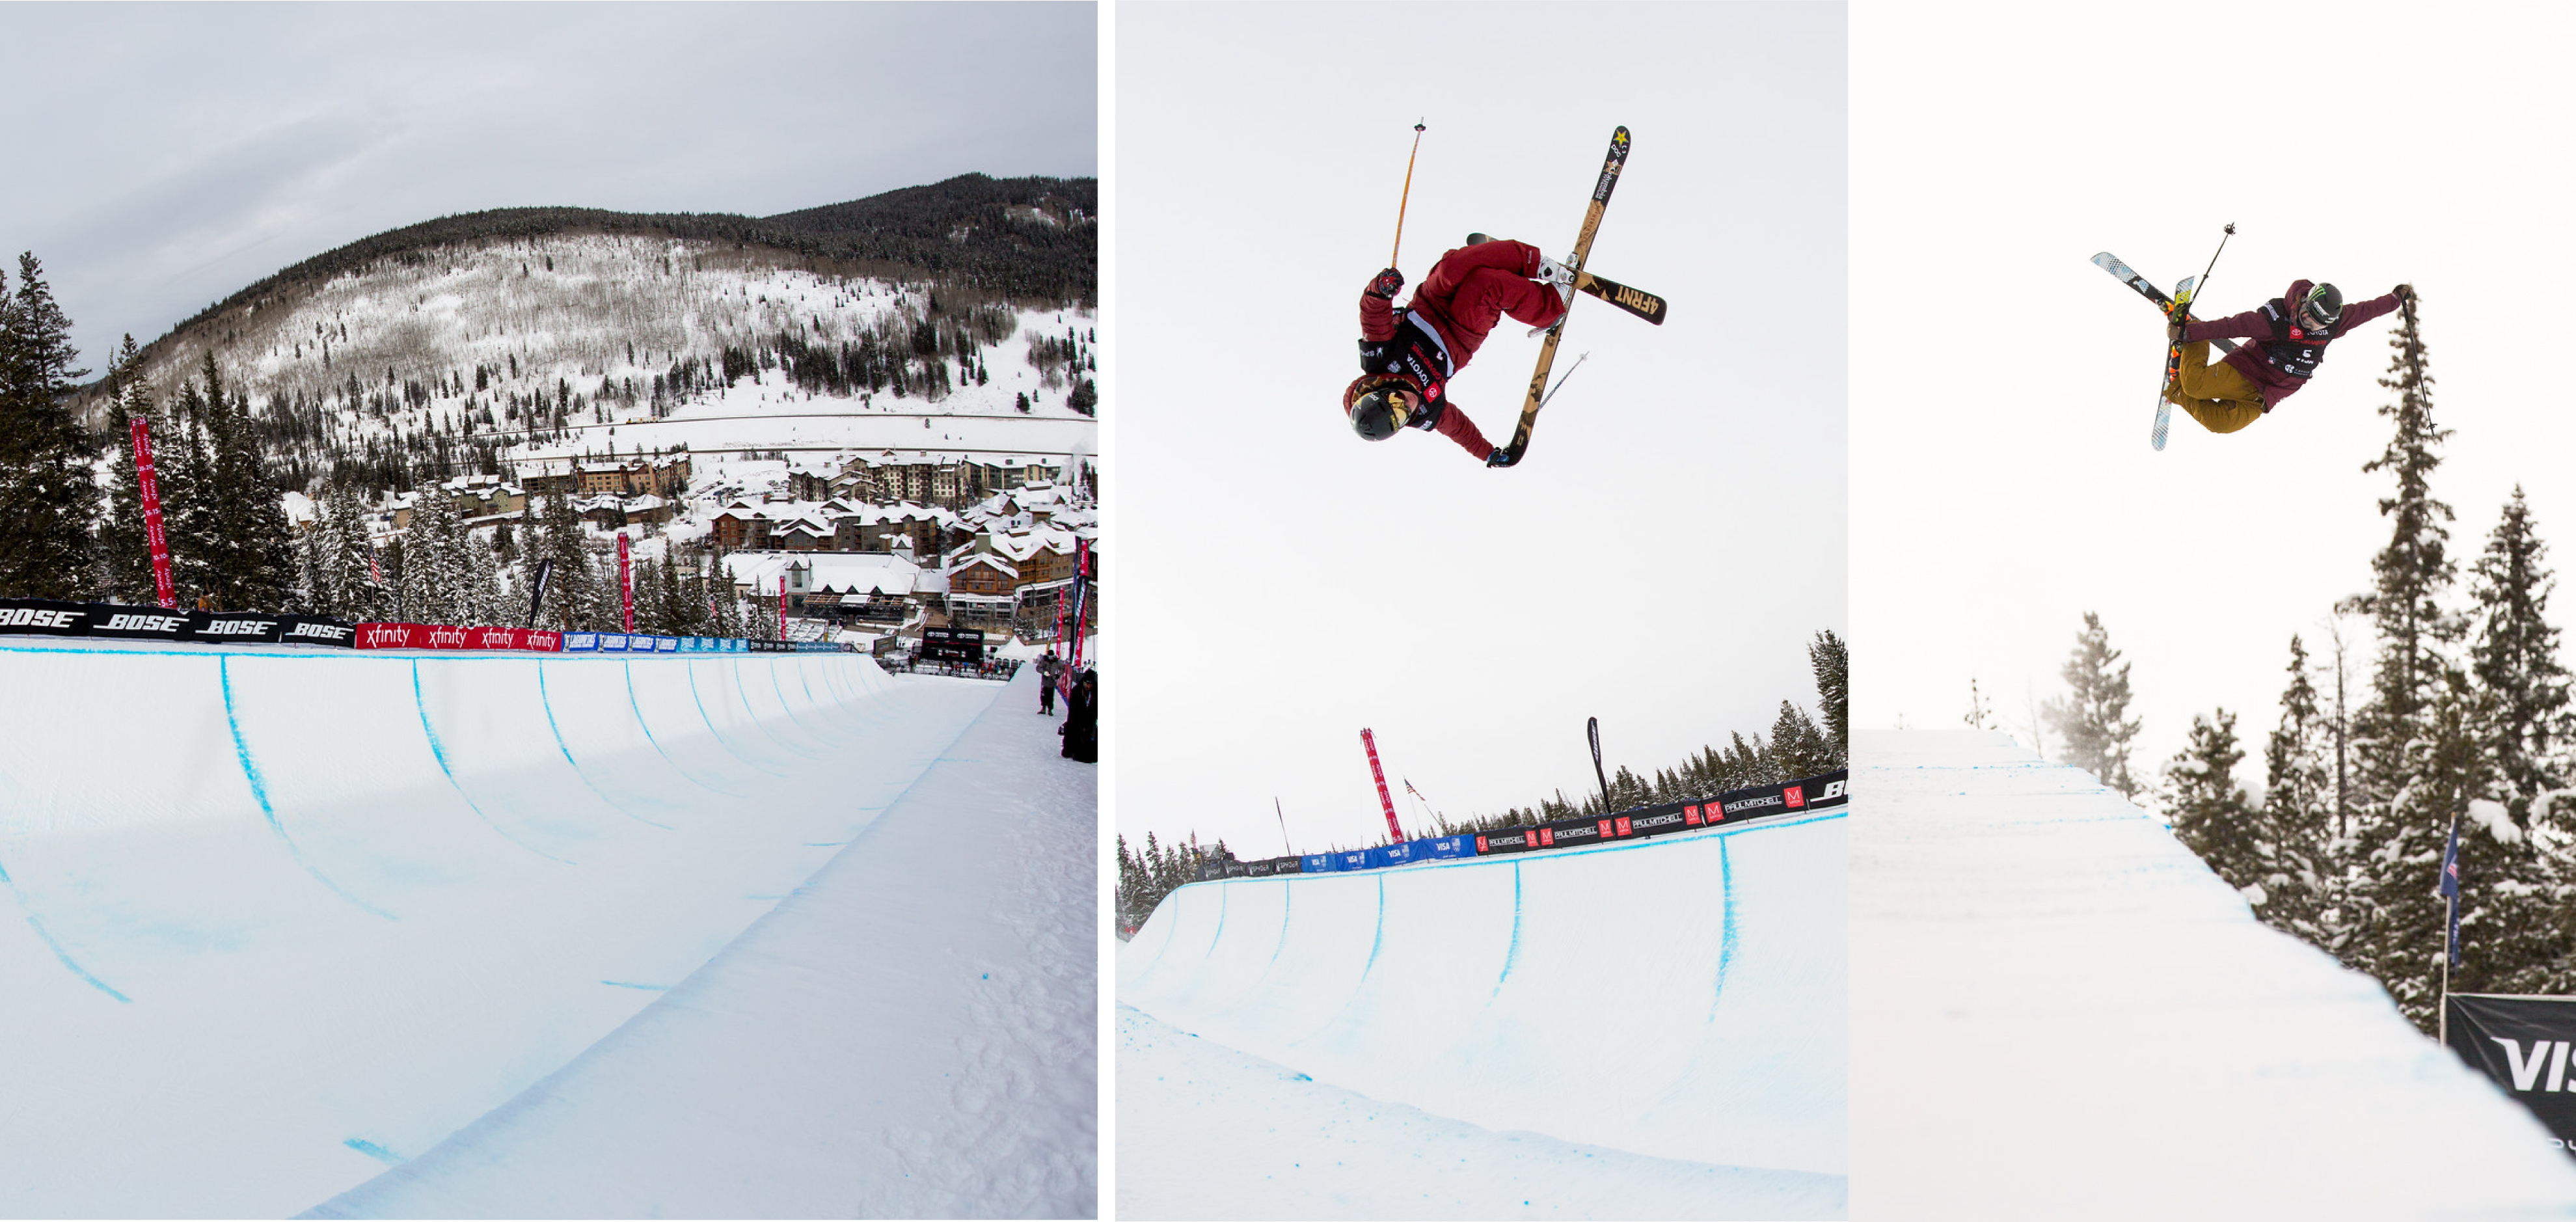 Toyota U.S. Grand Prix at Copper Mountain